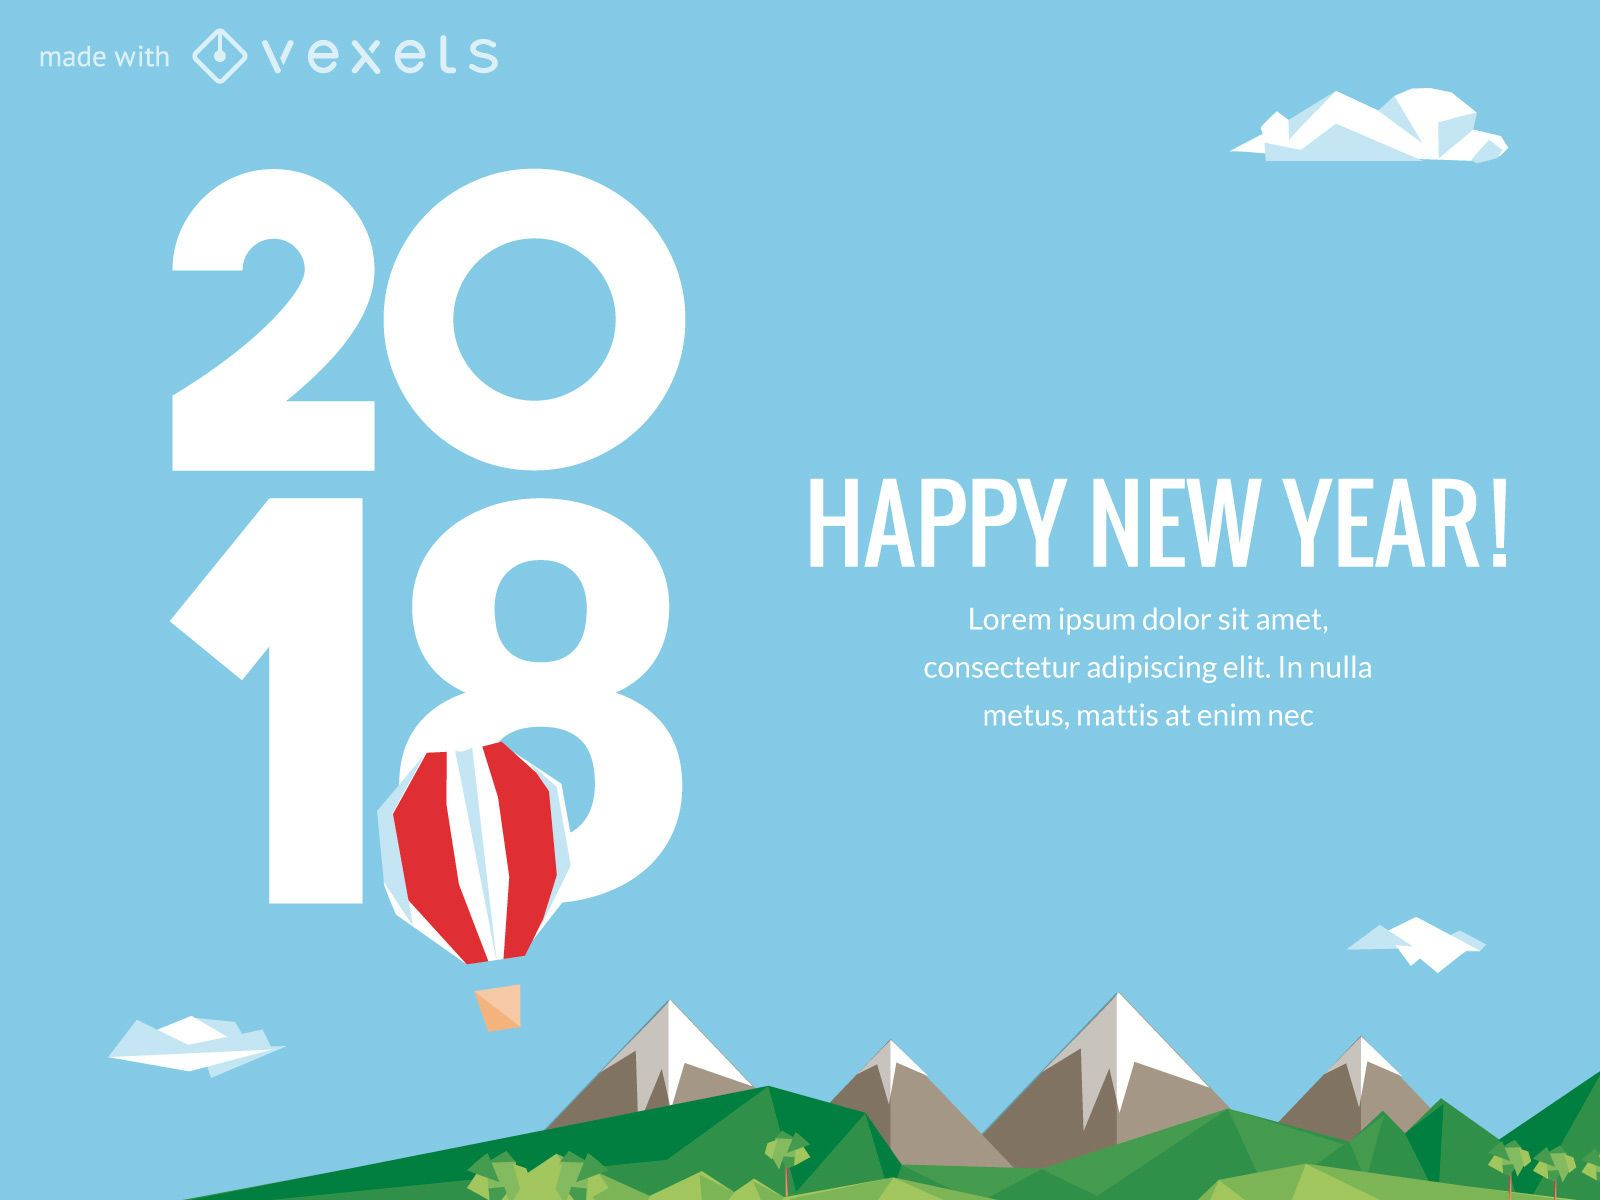 2018 New Year poster maker with options